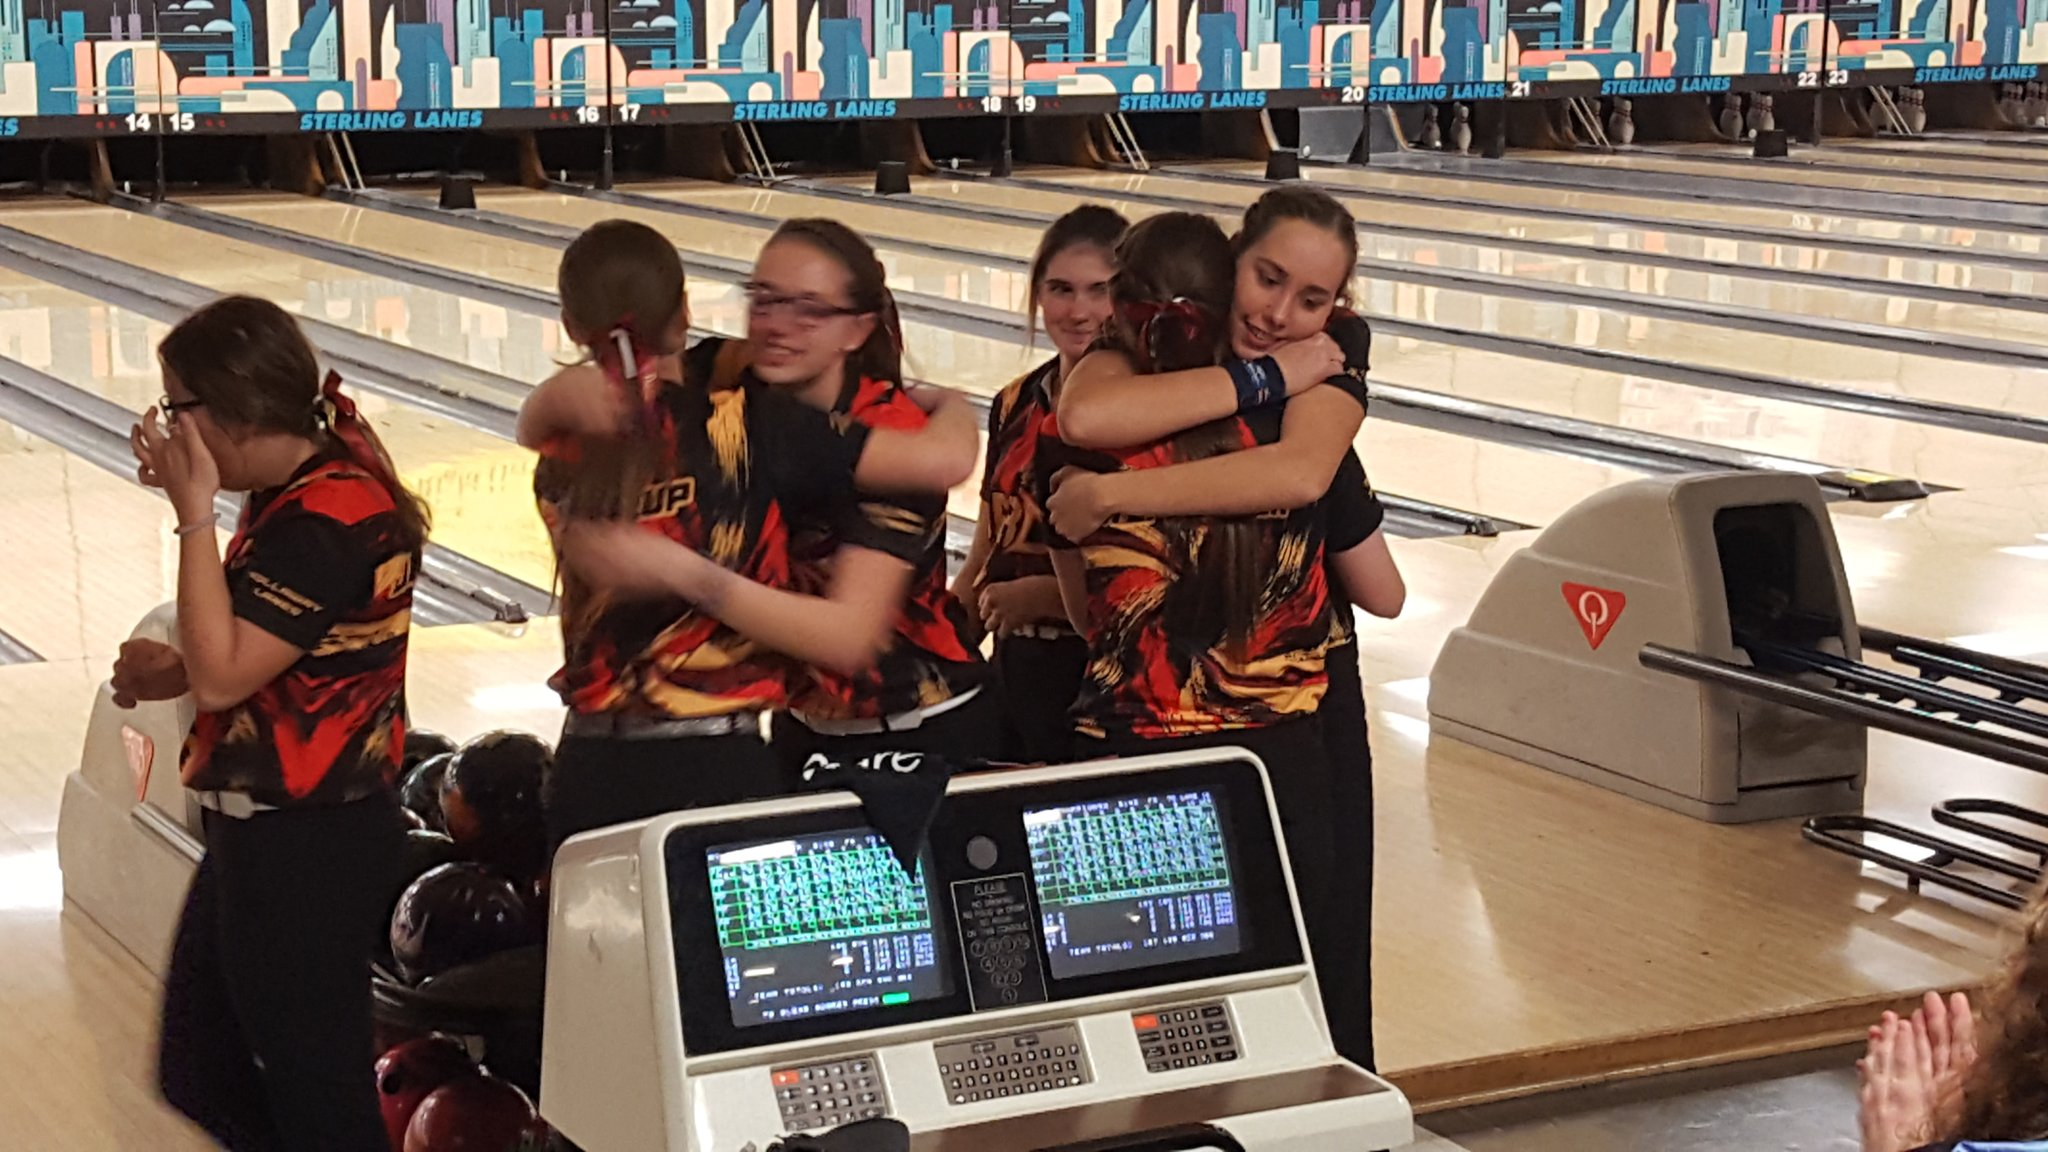 Davison girl bowlers state Champs again!!! 5 the trophy in 6 years!!! https://t.co/cFkFAWumbR